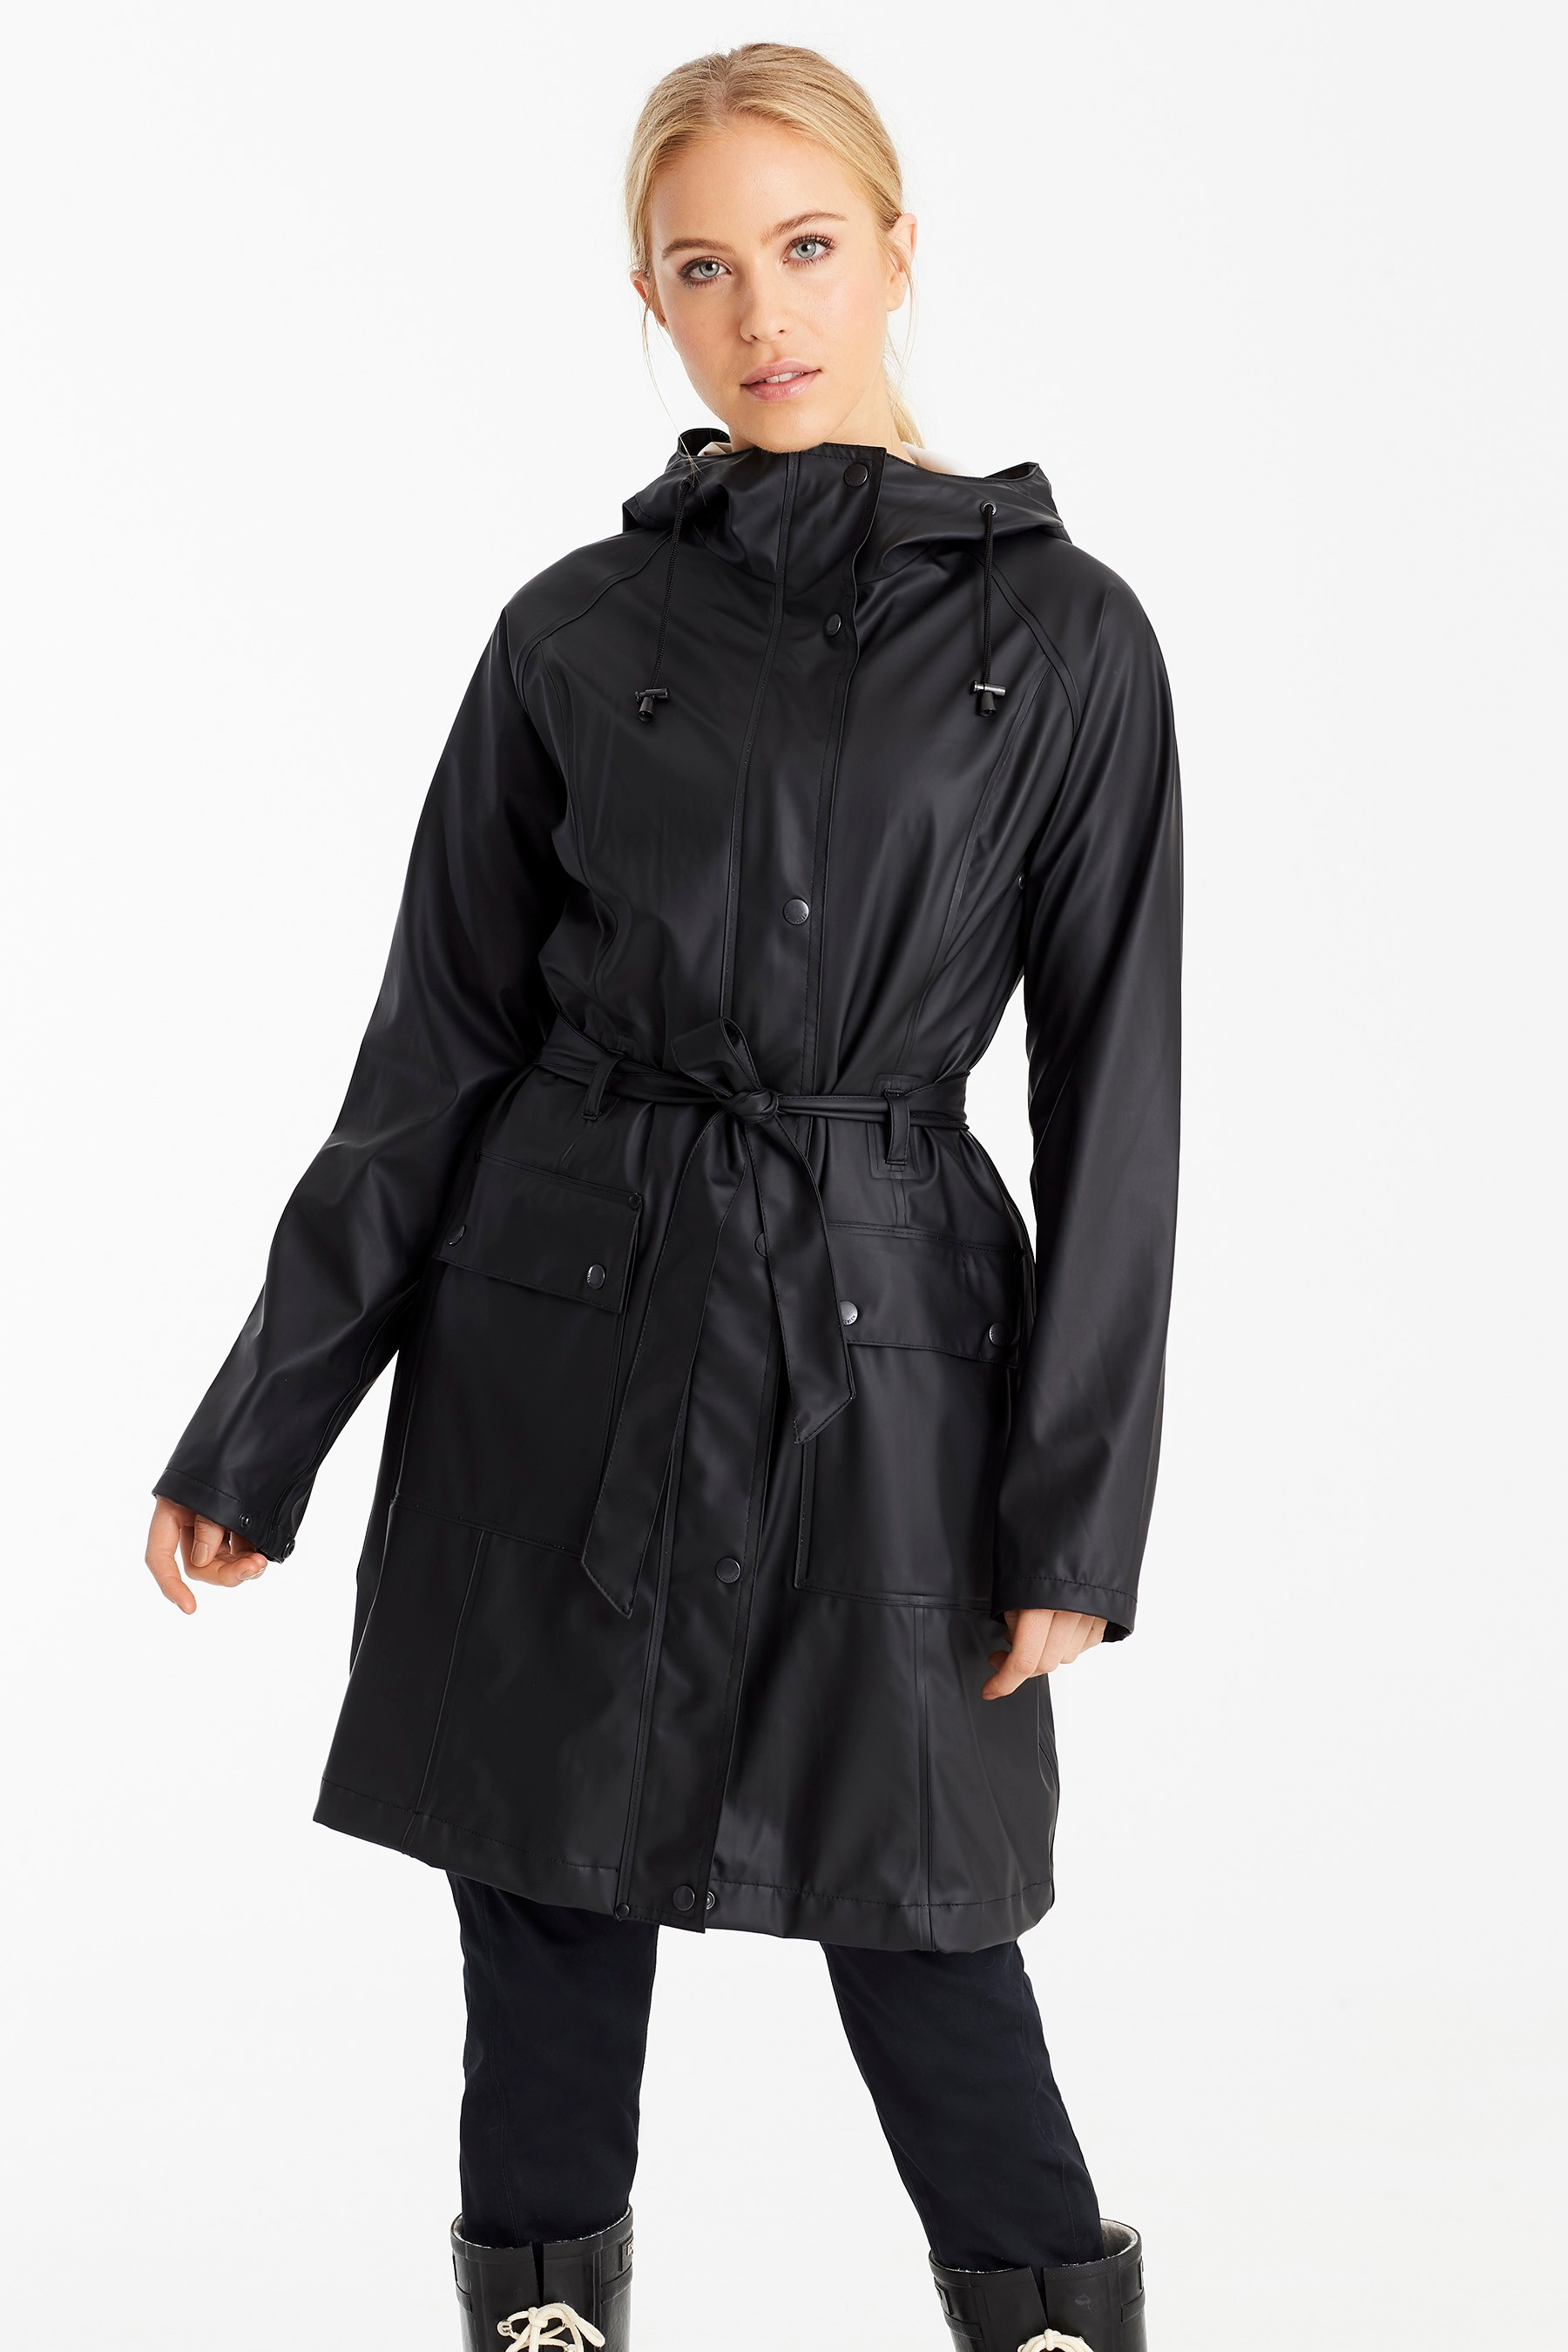 Ilse Jacobson Black Raincoat £110